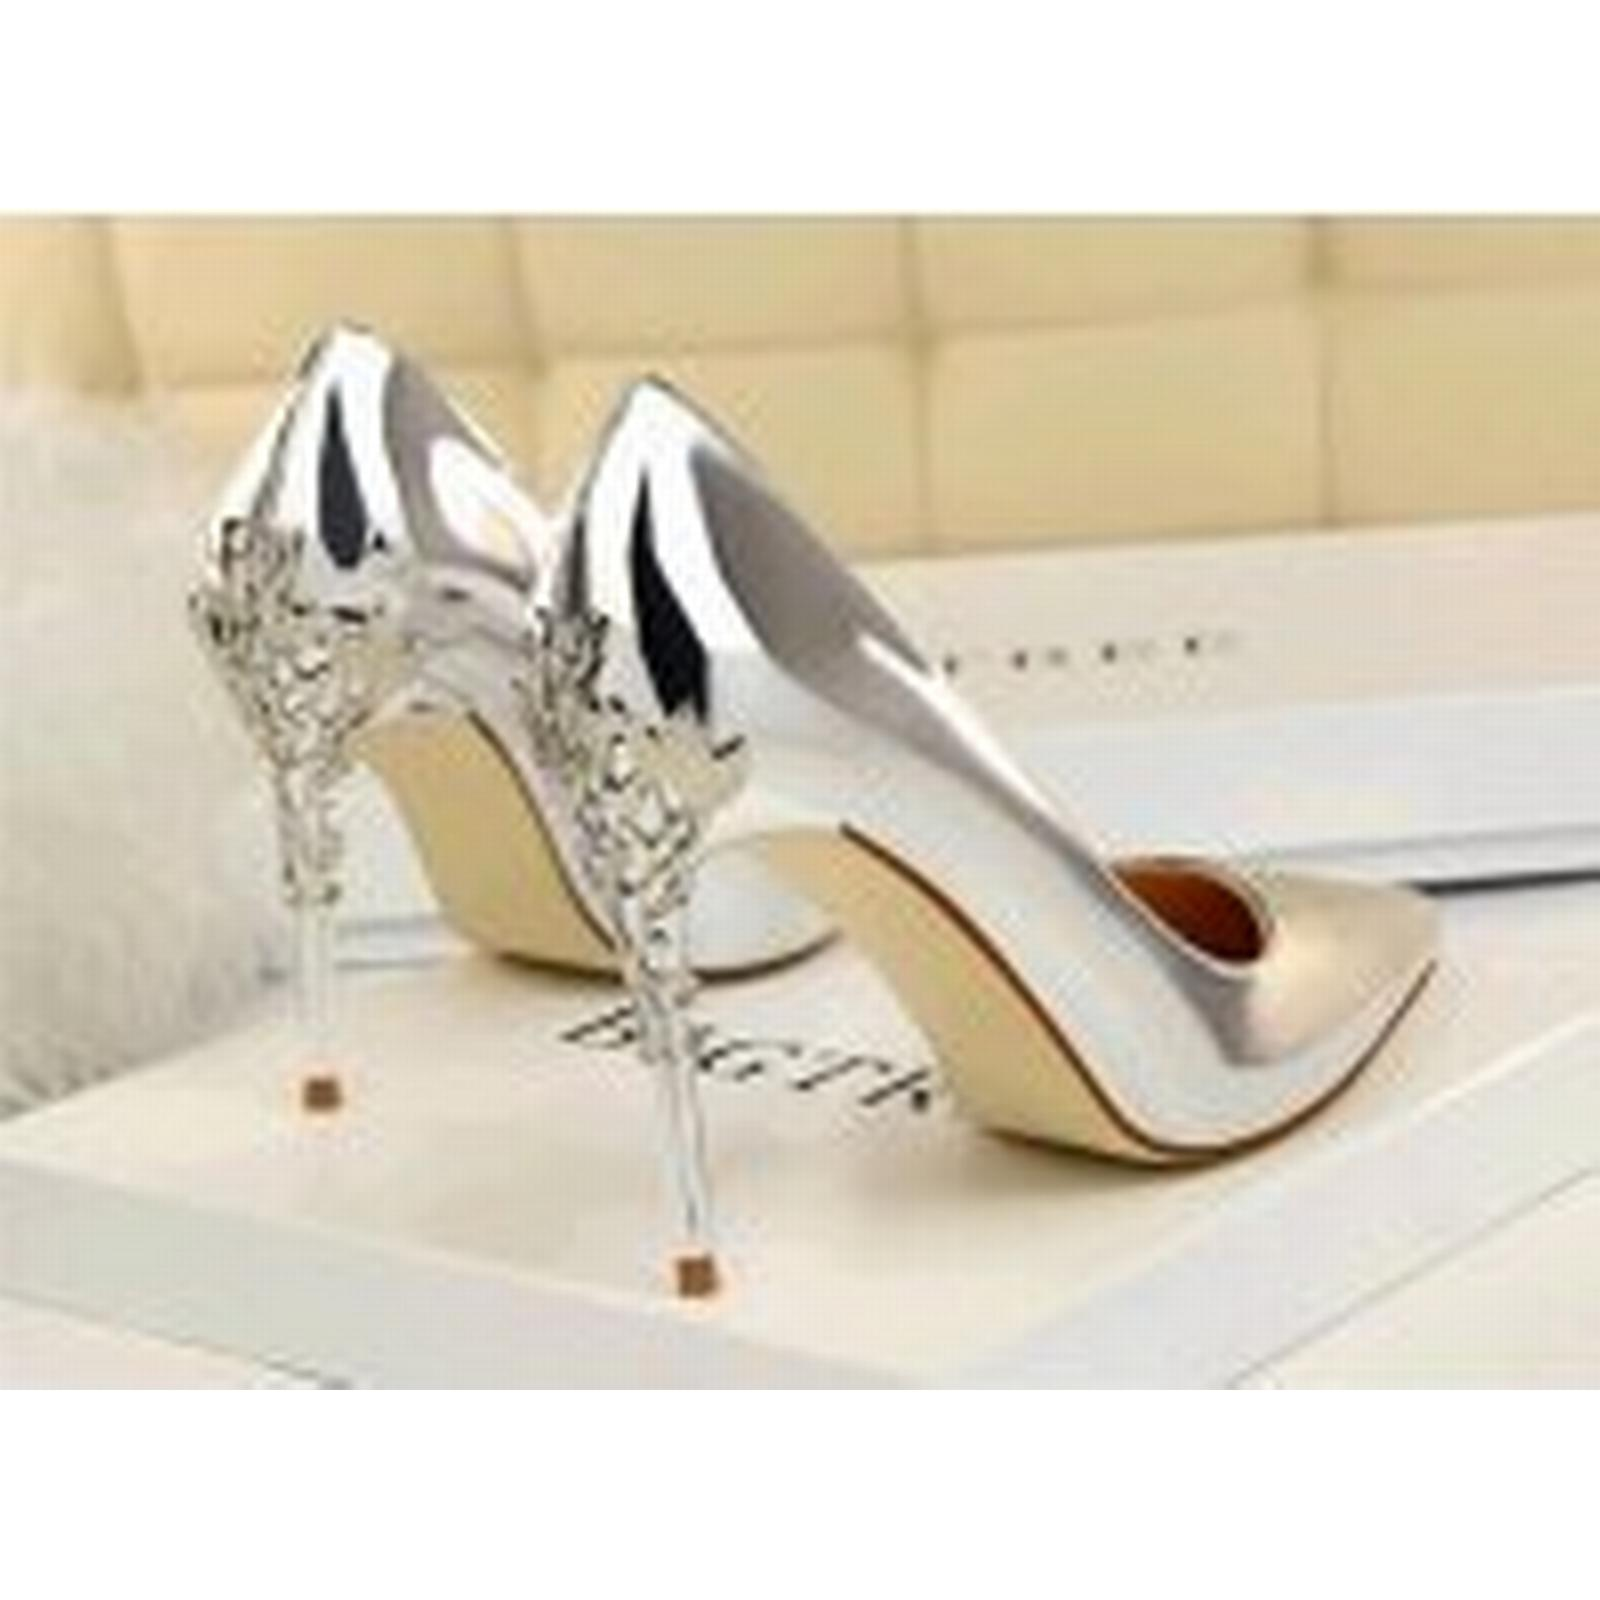 Bonanza (Global) pp458 pp458 (Global) luxury candy color pump w metallic heels, US Size 5-8.5, silver fa0785